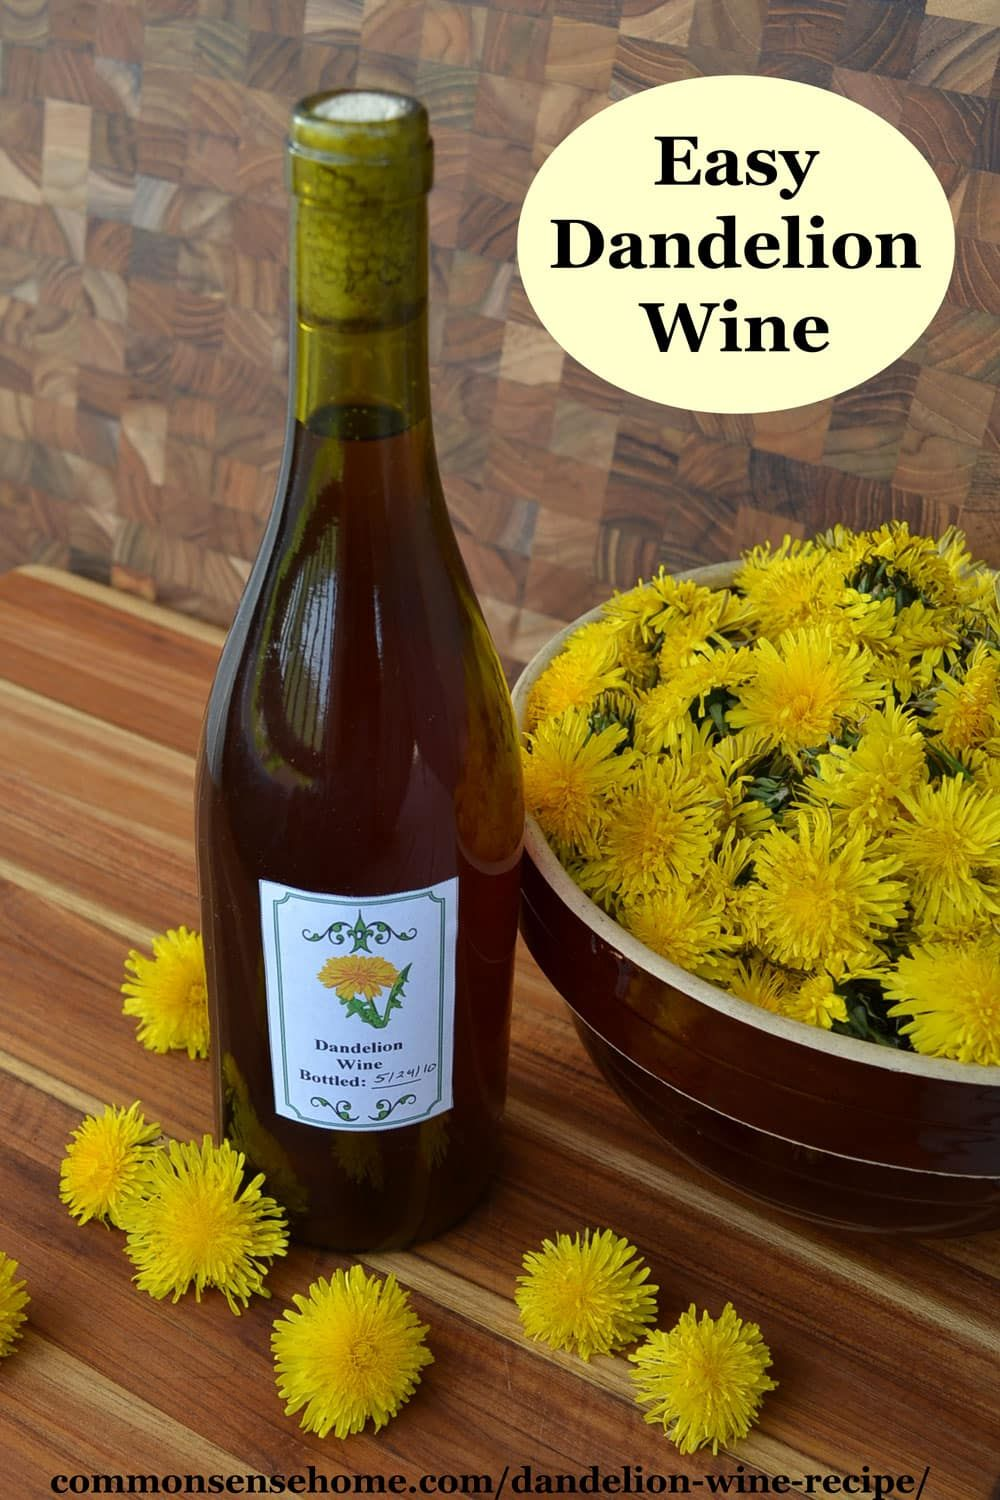 Dandelion Wine Recipe The Mistake You Don T Want To Make Recipe In 2020 Dandelion Wine Wine Recipes Dandelion Recipes